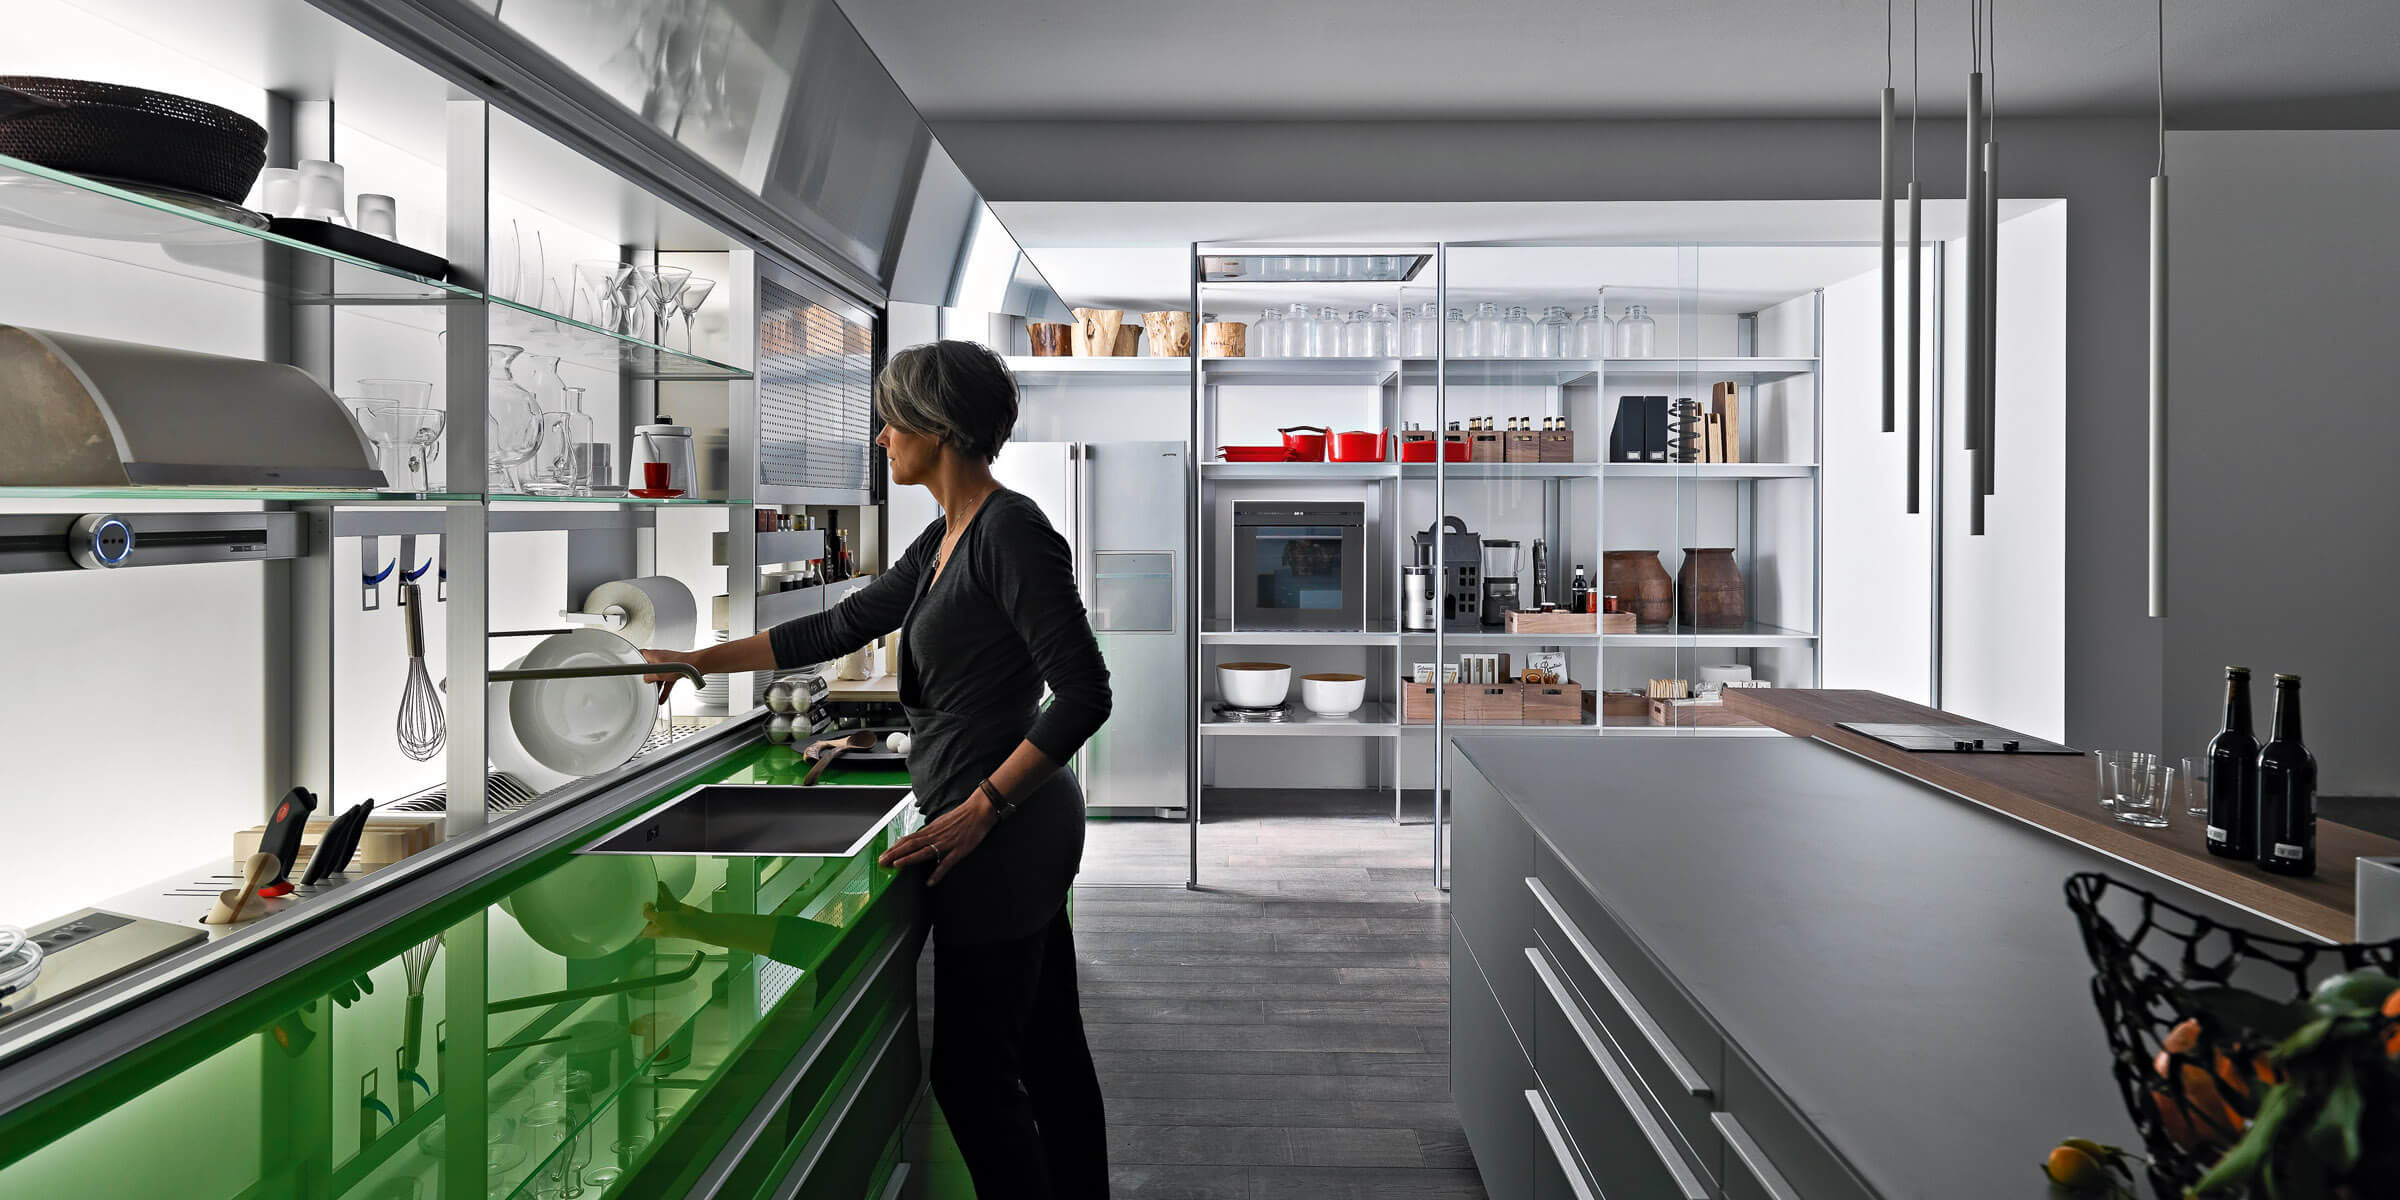 166 valcucine new logica system2011 4  - New Logica System